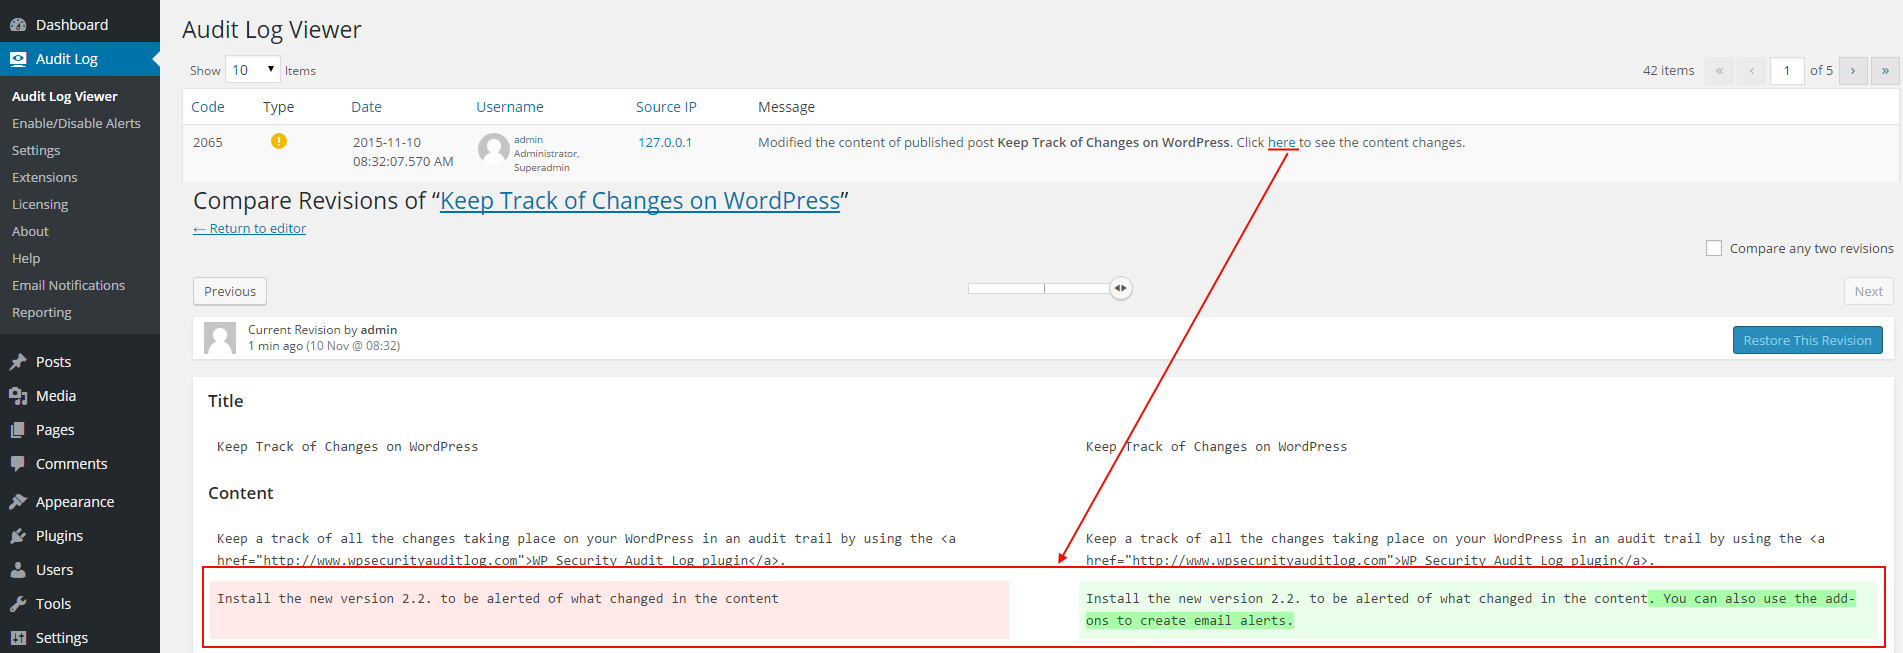 """WP Security Audit Log is integrated with the built-in revision system of WordPress, thus allowing you to see what content changes users make on your WordPress posts, pages and custom post types. For more information read <a href=""""https://www.wpsecurityauditlog.com/support-documentation/how-keep-record-of-content-changes/?utm_source=wordpress.org&utm_medium=referral&utm_campaign=WSAL&utm_content=plugin+repos+description"""">Keep Record of All WordPress Content Changes</a>"""